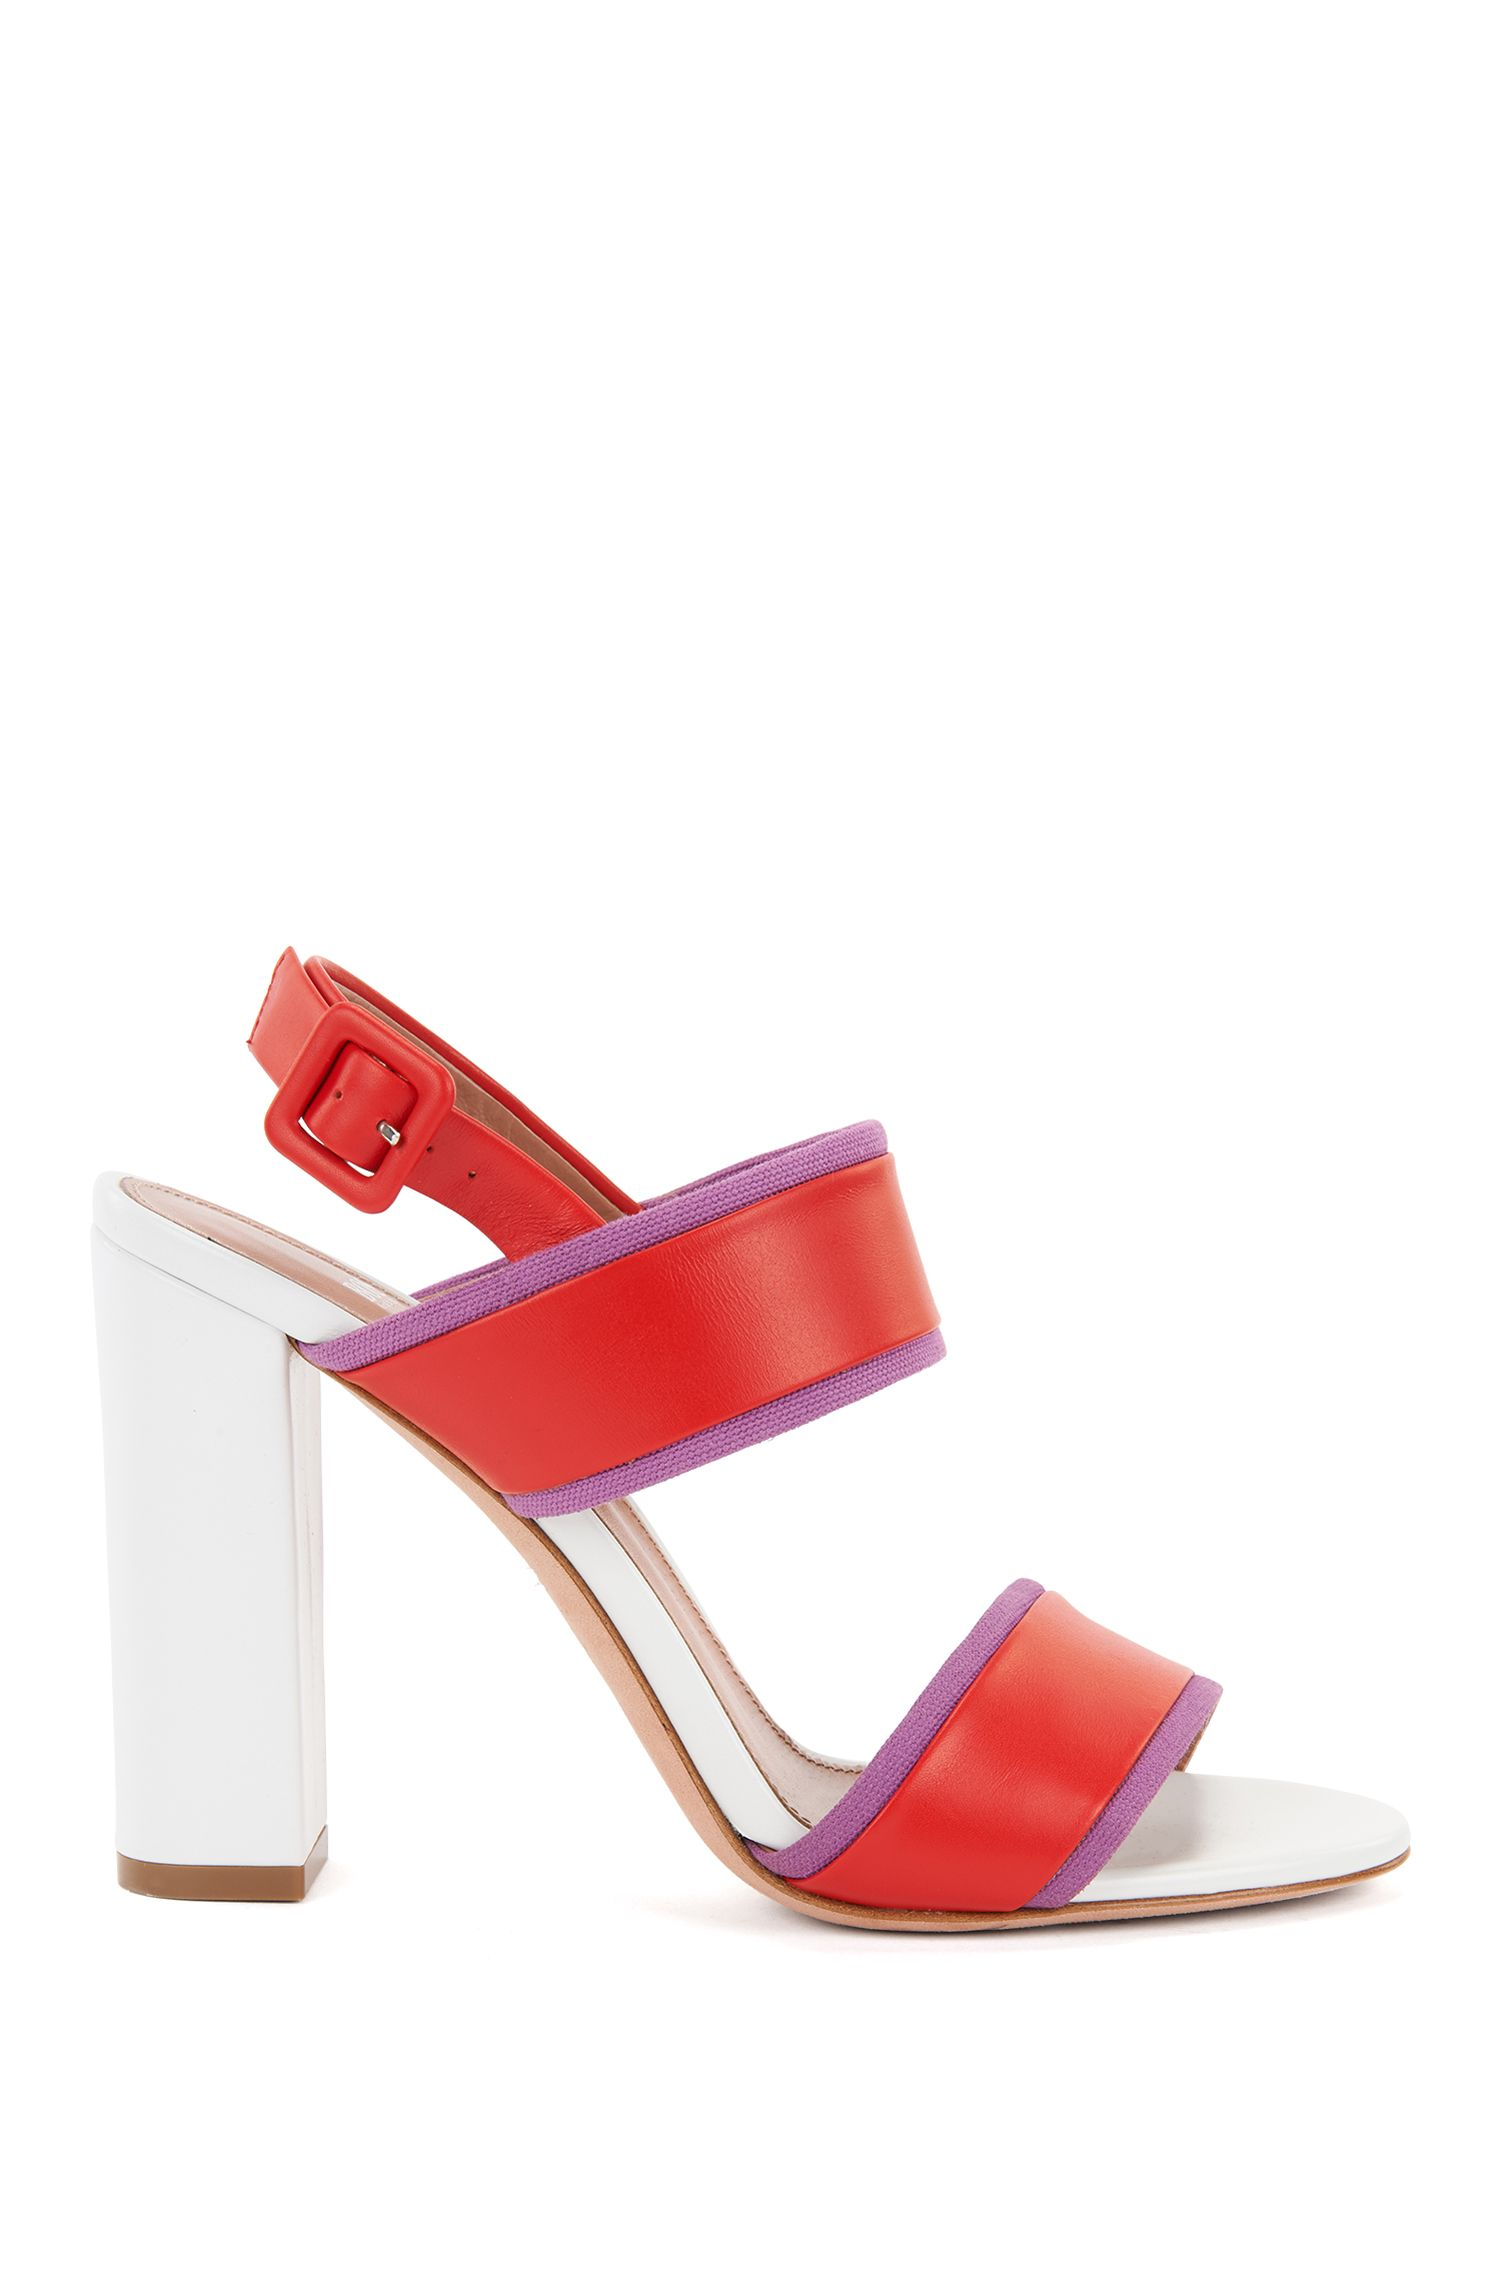 Block-heel sandals in Italian leather